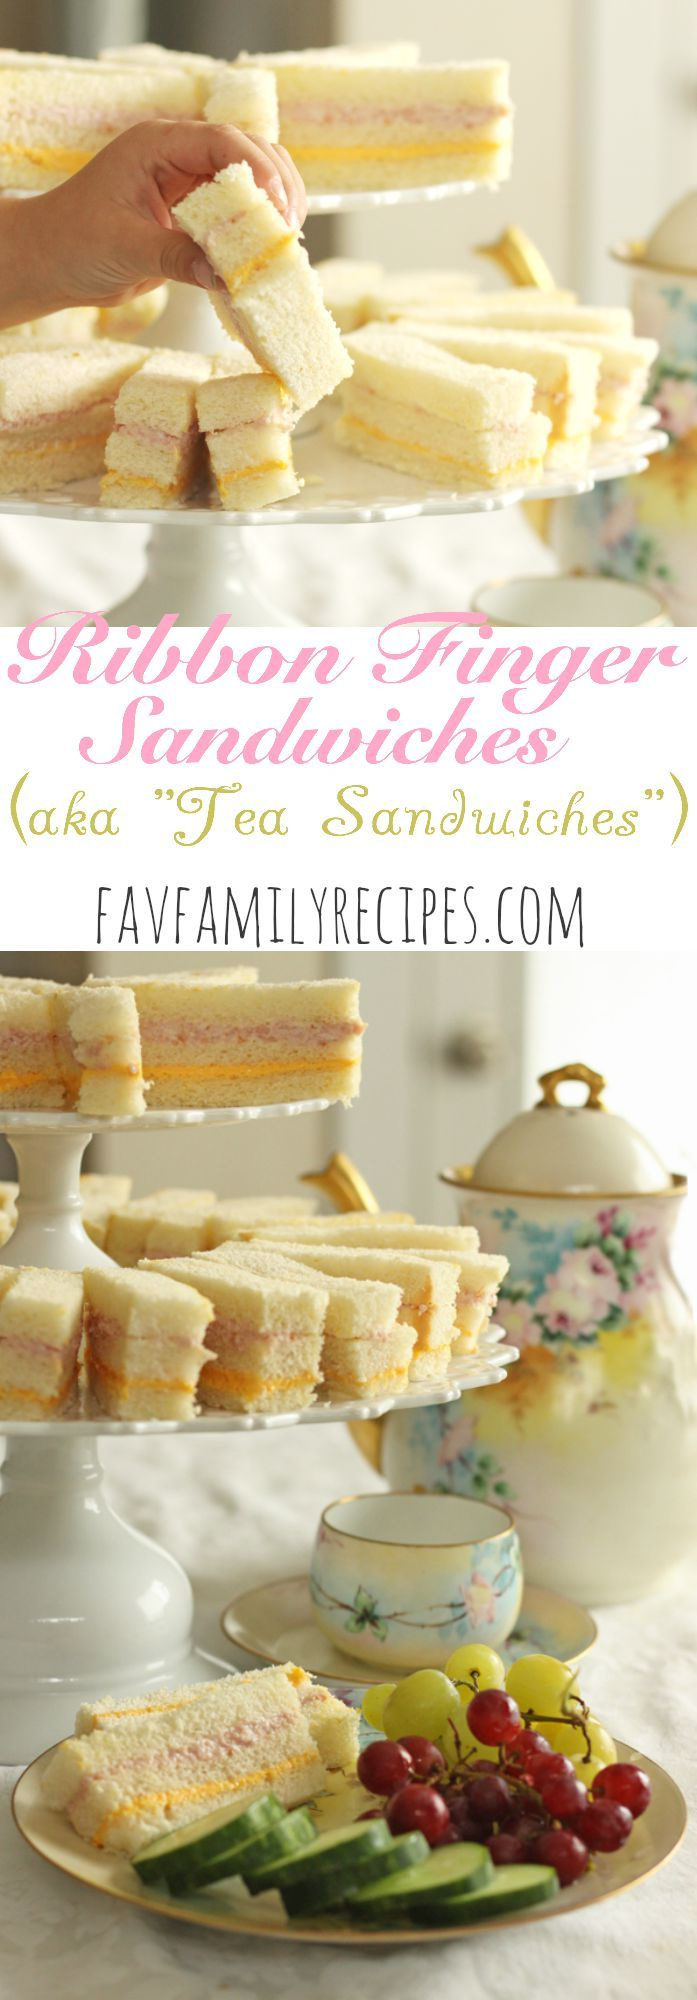 """These ribbon finger sandwiches (aka """"Tea Sandwiches"""") are perfect for baby/bridal showers, receptions, tea parties, luncheons, or birthday parties. So easy to make and tasty too! Find all our yummy pins at https://www.pinterest.com/favfamilyrecipz/"""